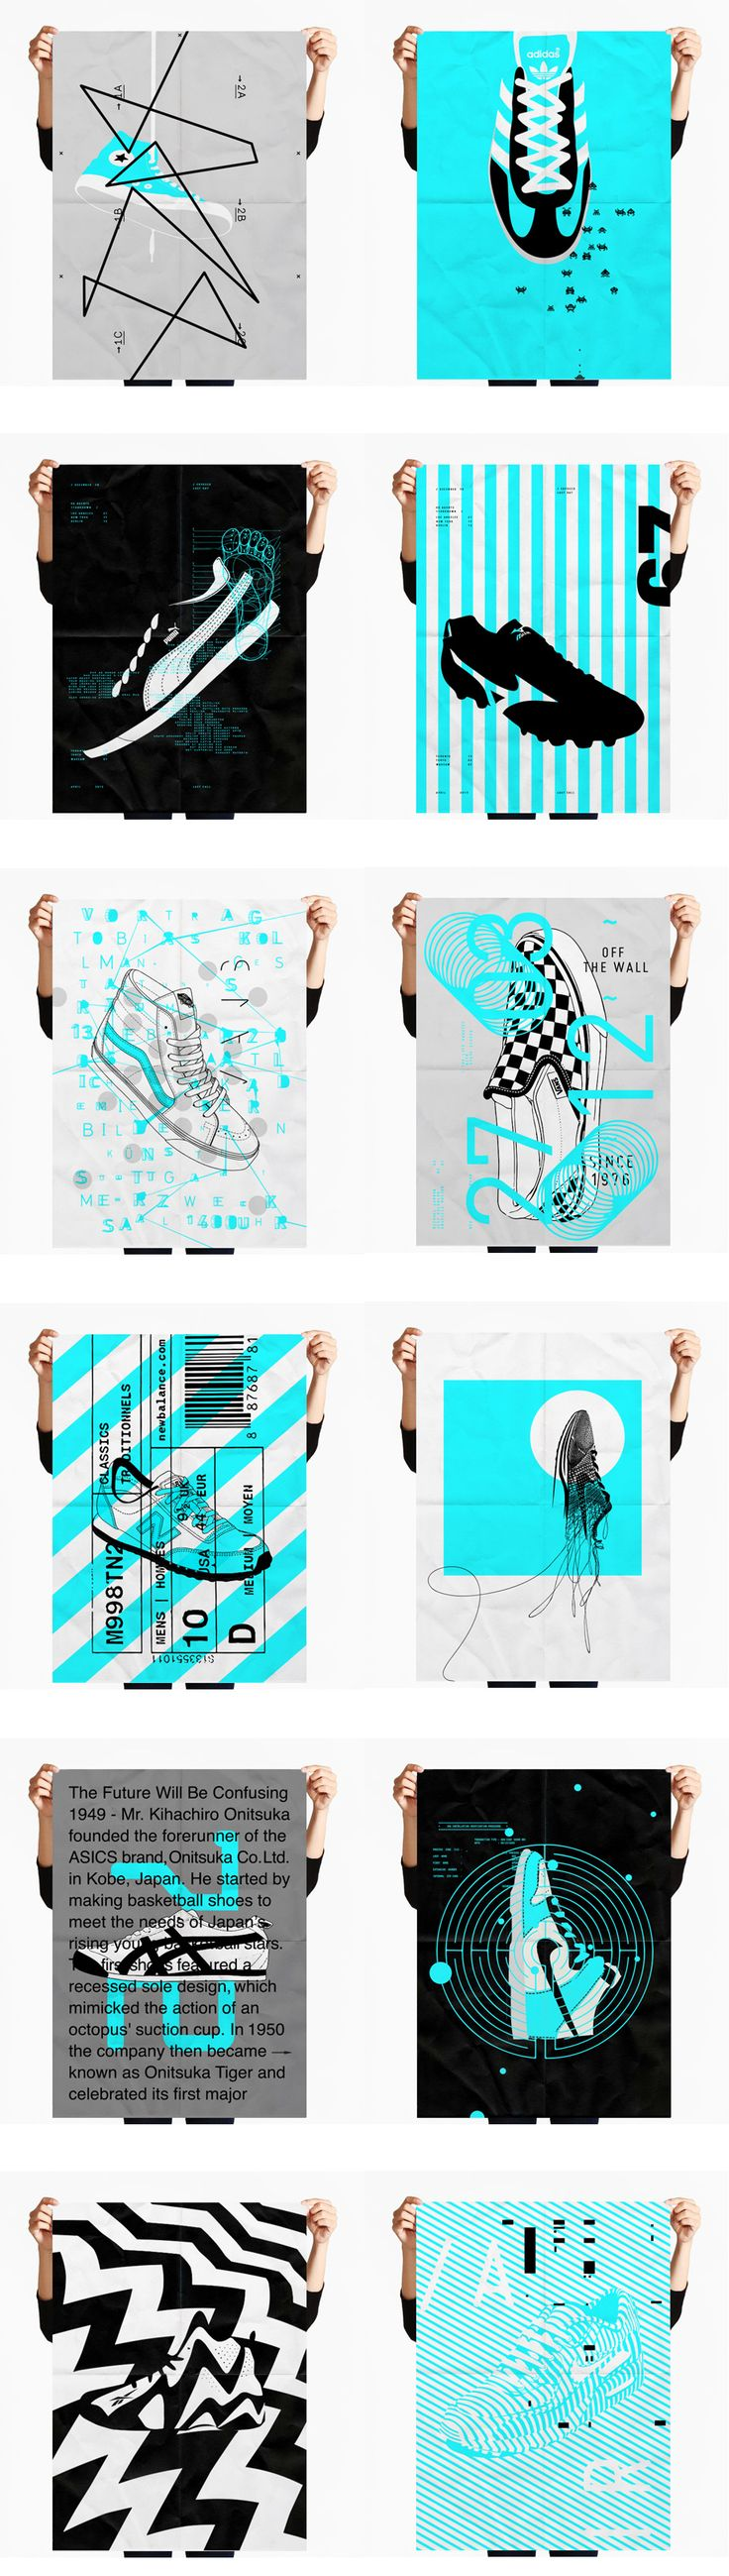 Poster design dimensions - Personal Project Screen Printing Sneakers Poster Series Buy Womens Shoes Shopping Sites For Shoes Shoes And Boots Online Ad